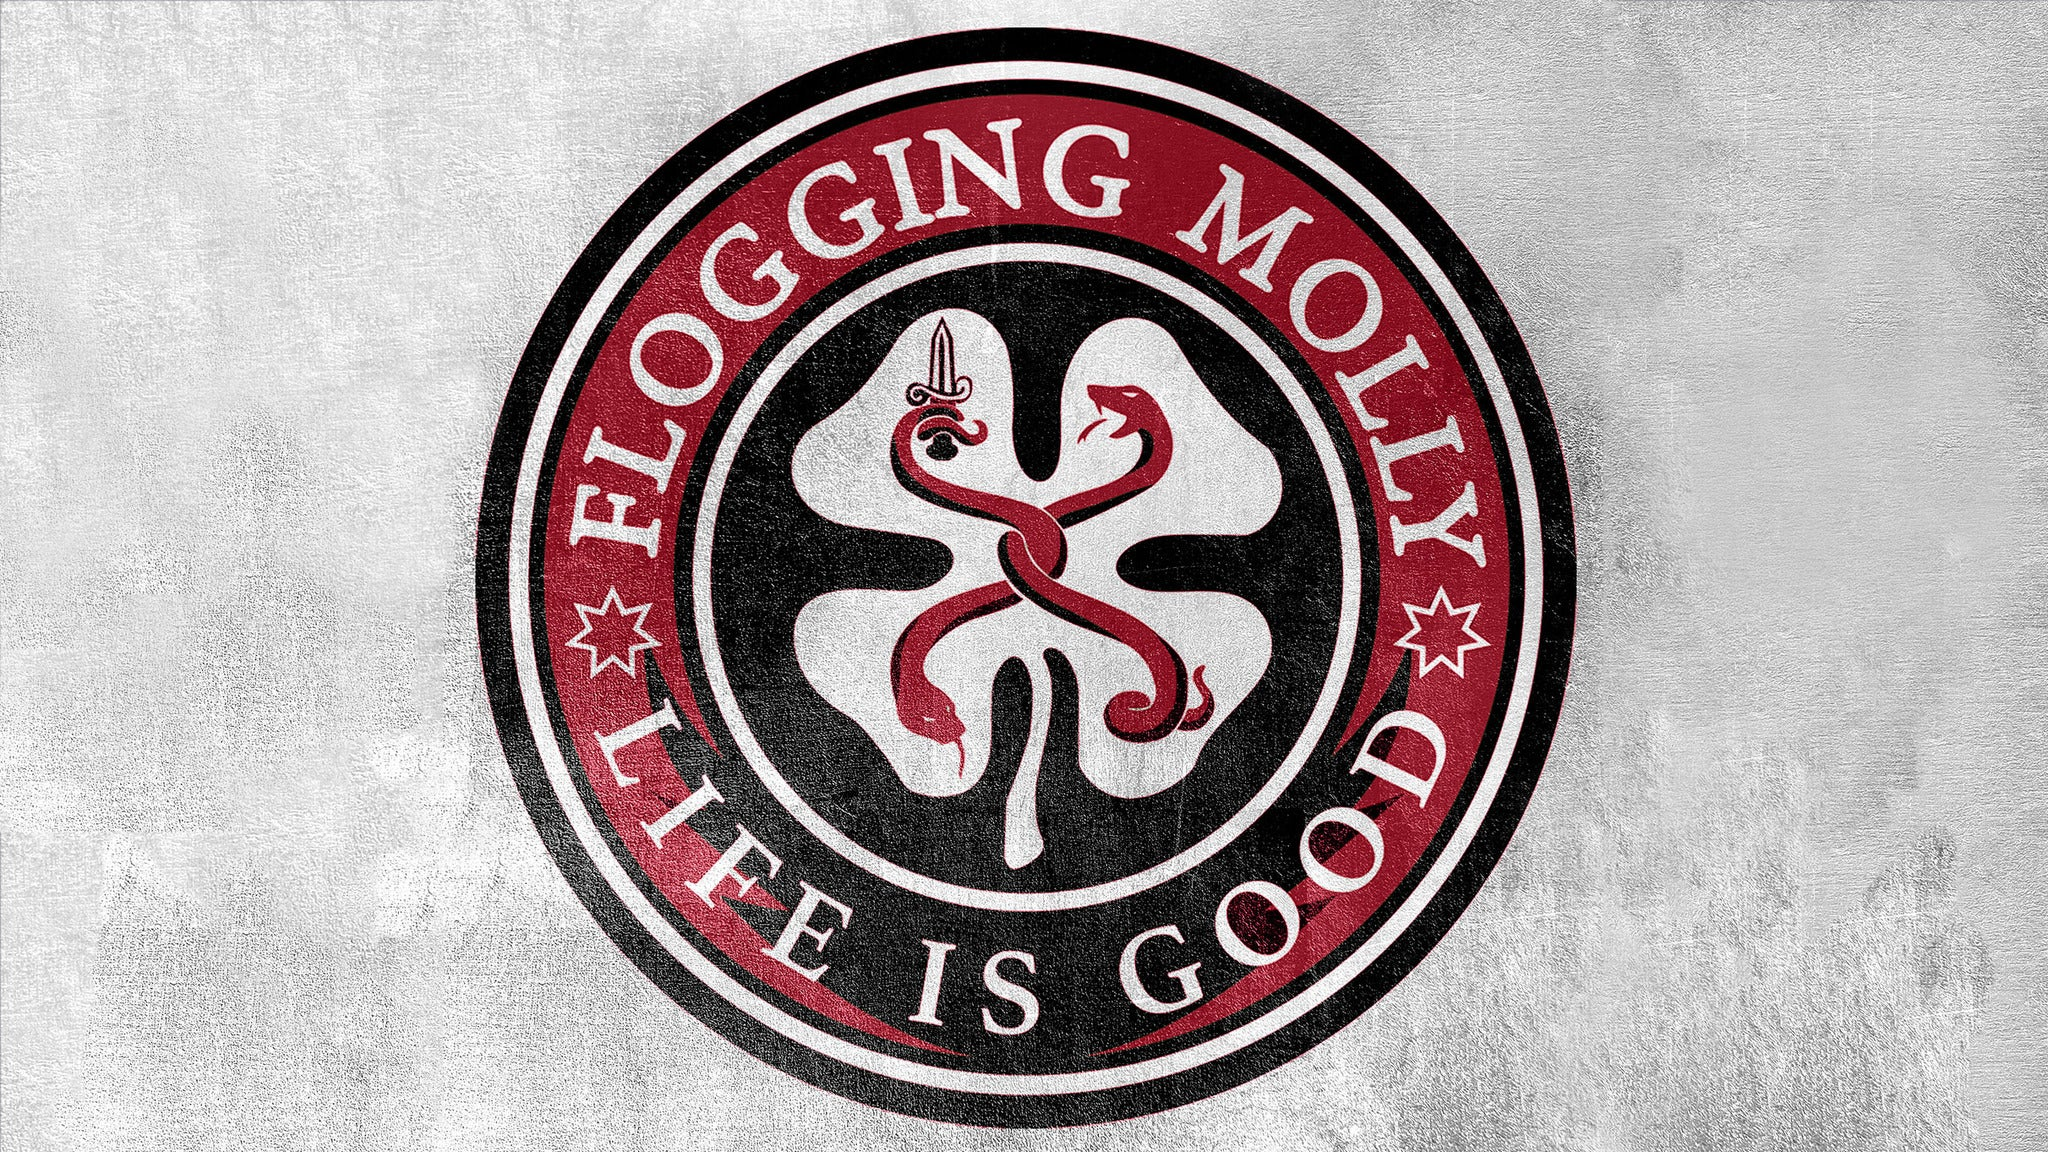 Flogging Molly / Dropkick Murphys at Mesa Amphitheatre